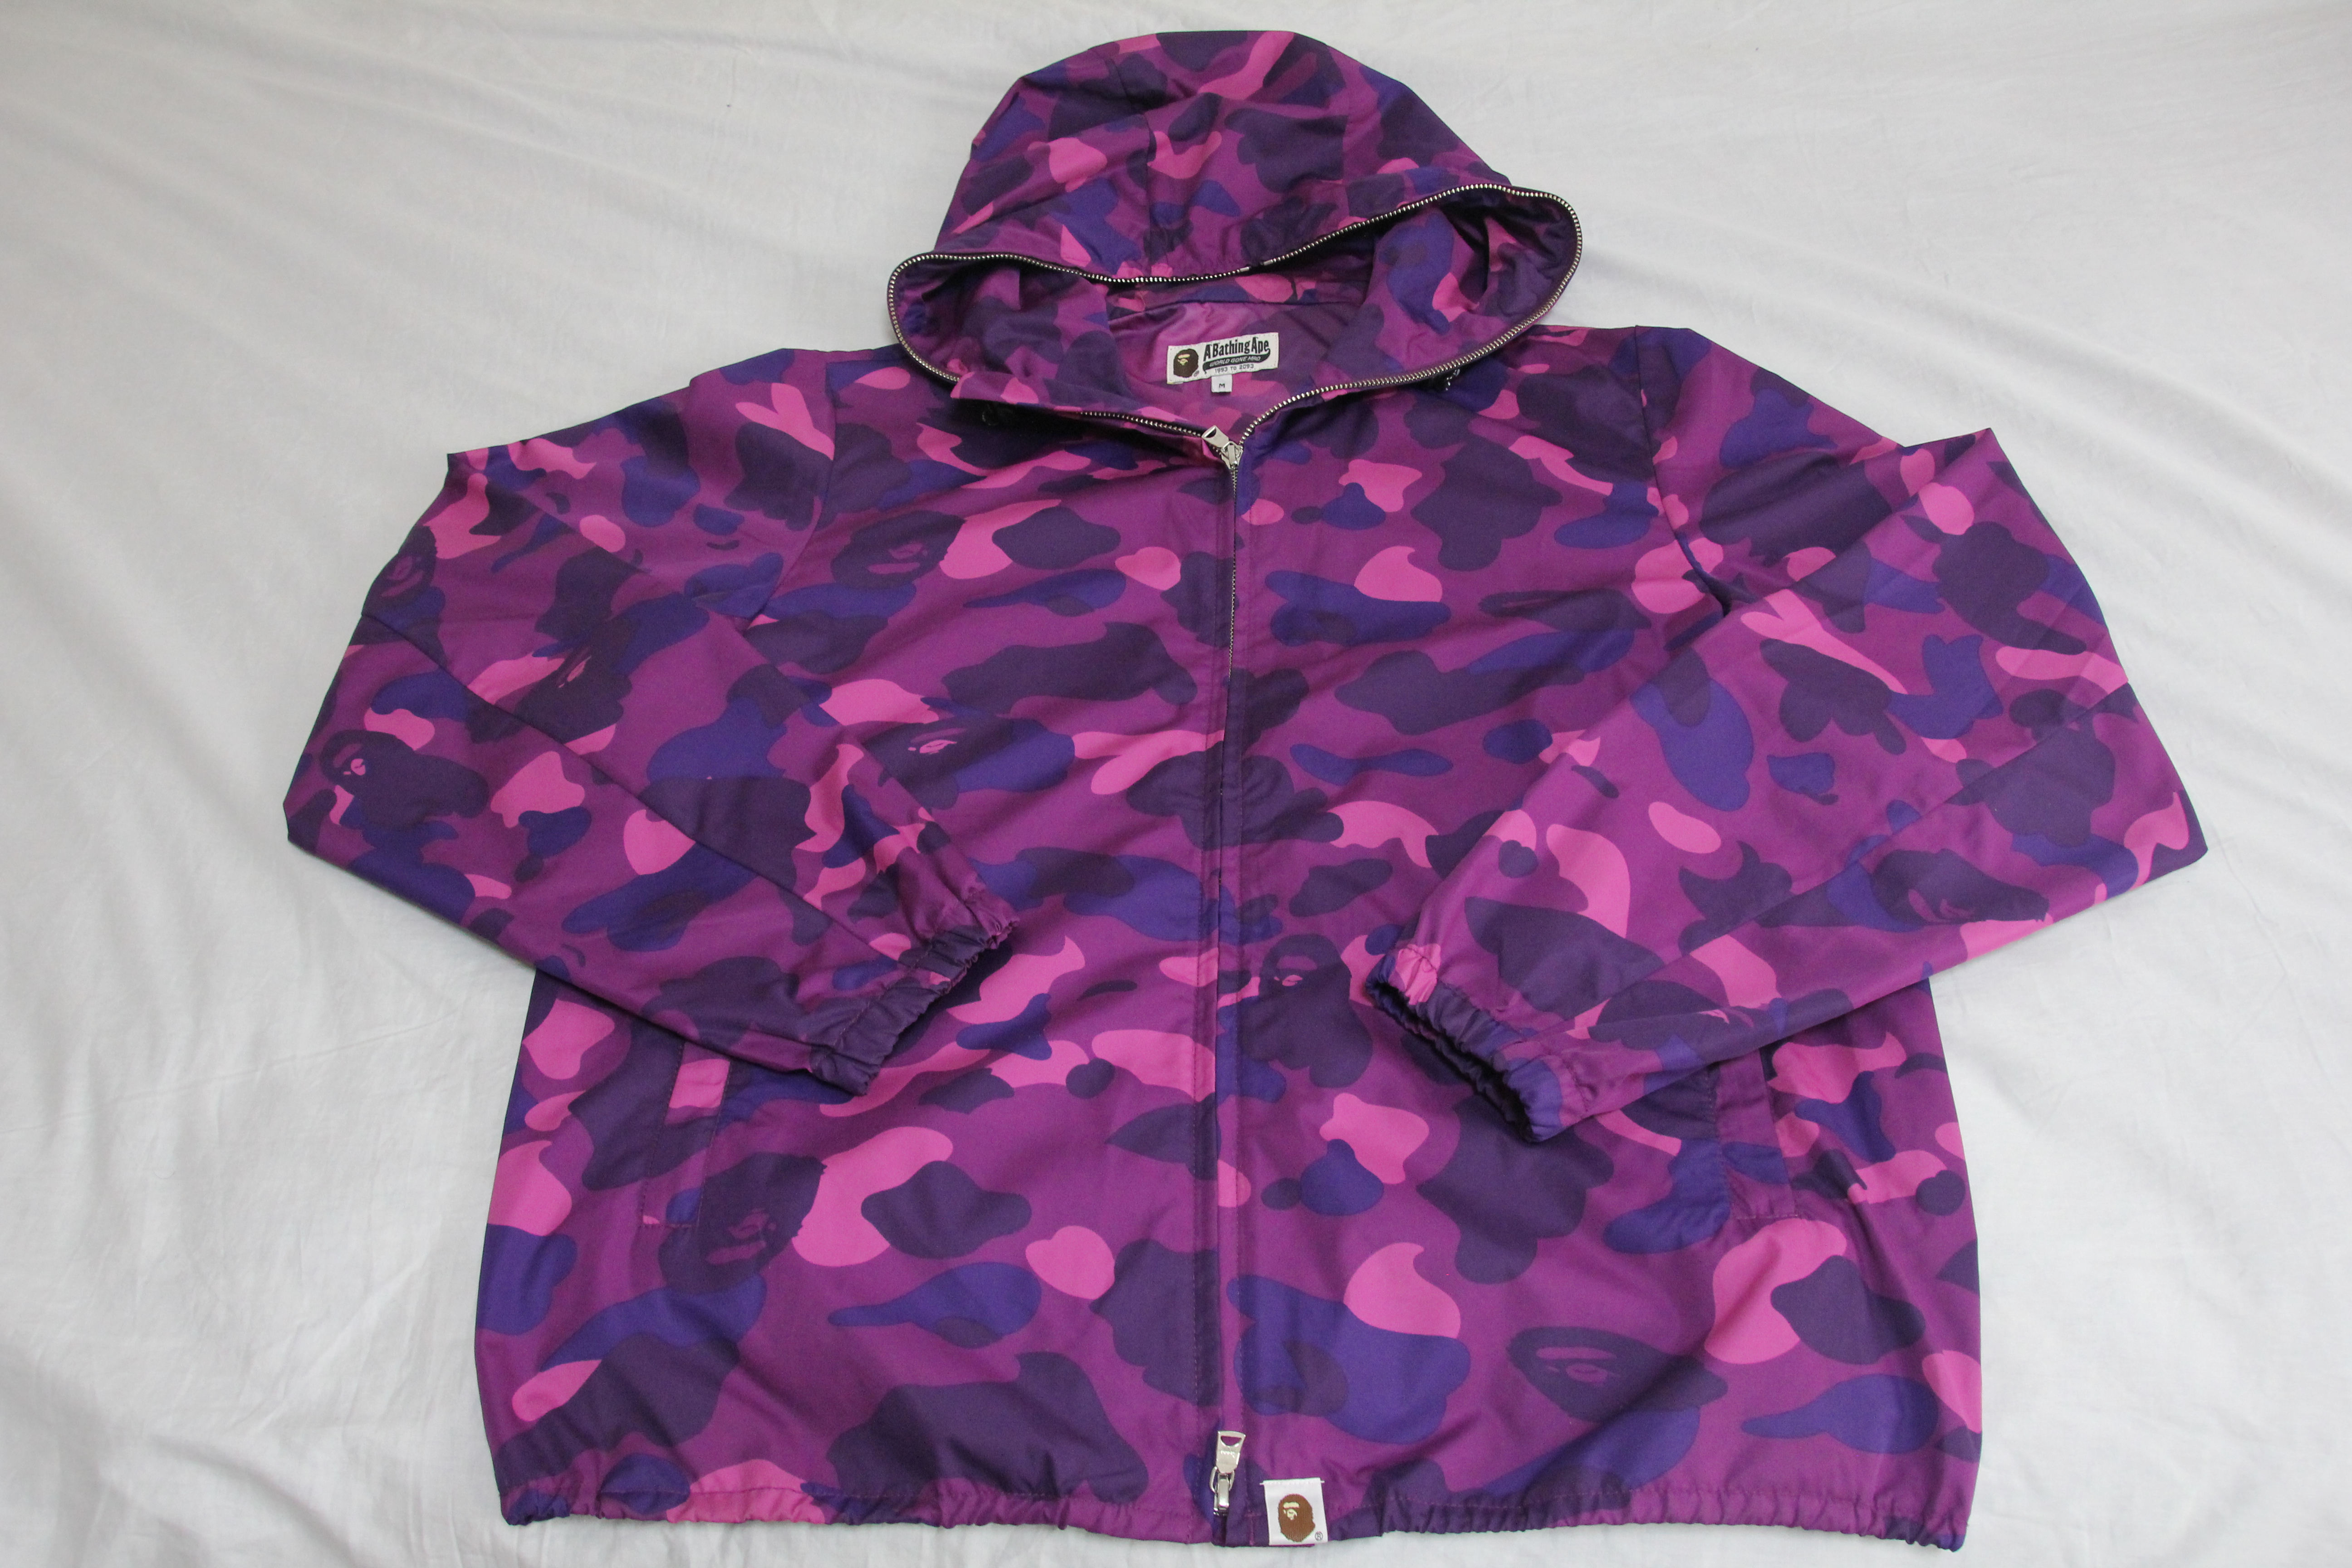 f9281ccf9468 Bape Purple Camo Windbreaker Jacket Size m - Parkas for Sale - Grailed